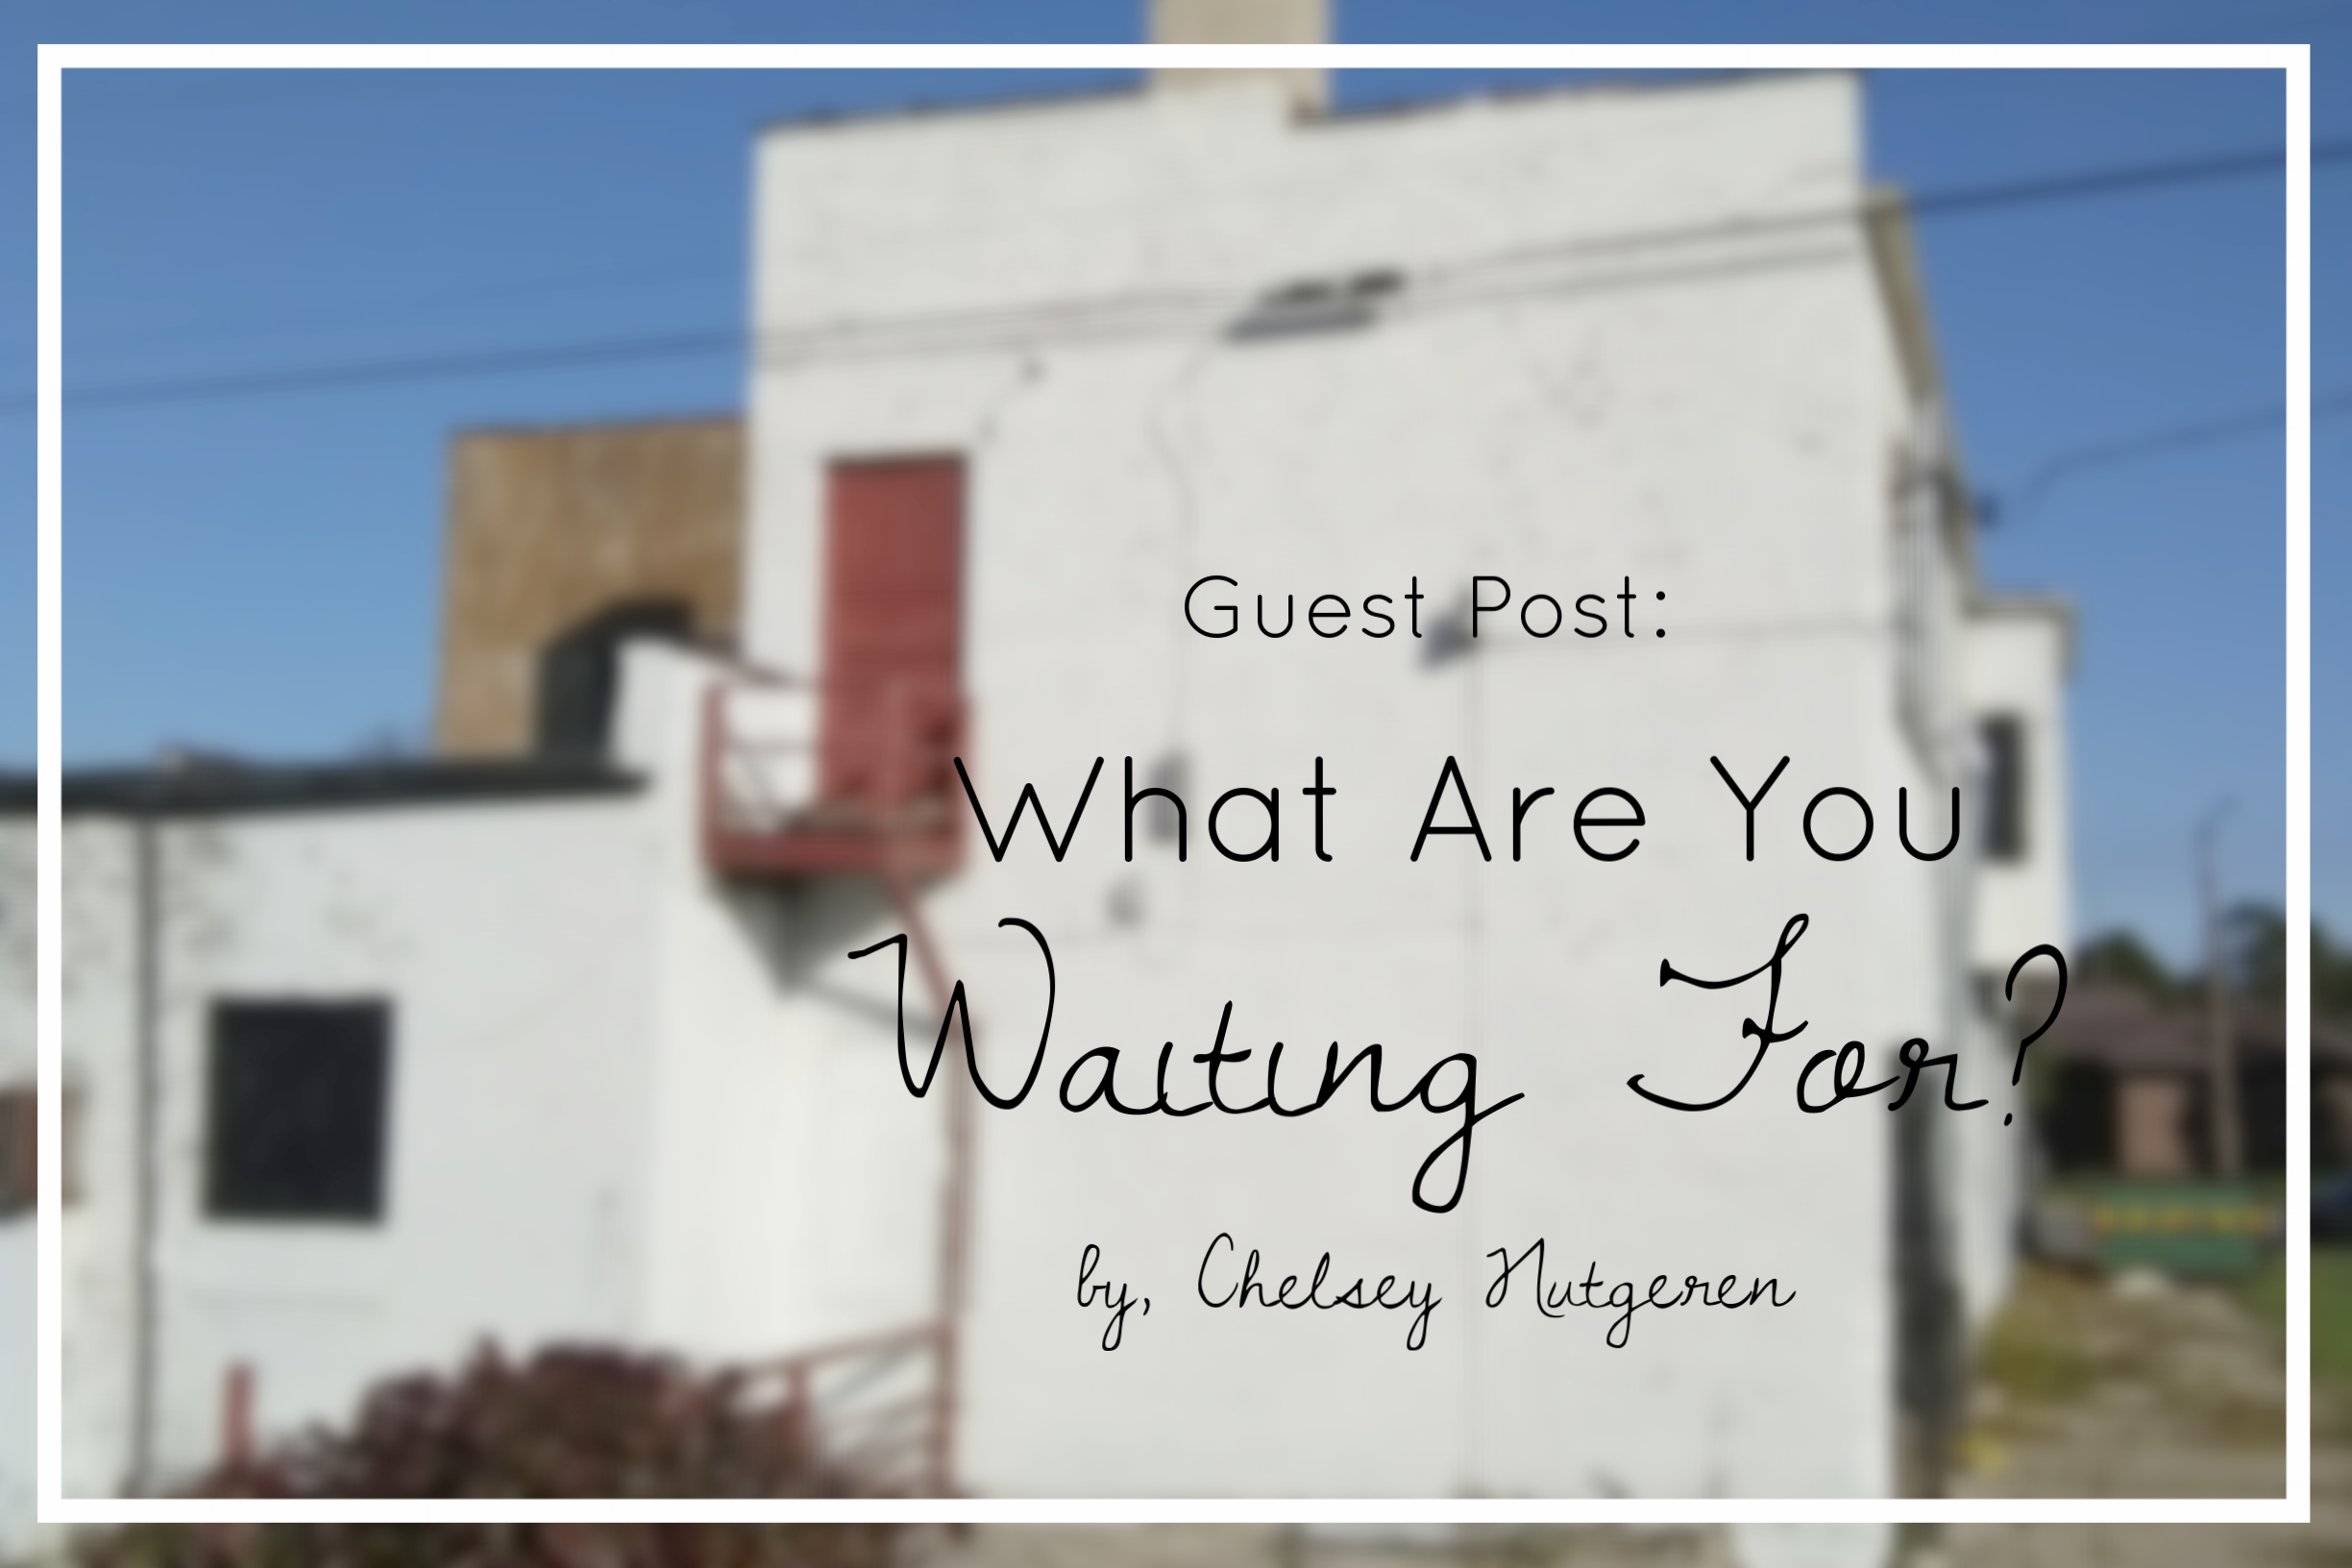 {Today's post was written by Chelsey Nugteren, the writer behind   Alive In Grace.     Chelsey is a wife, mom of two, writer, and dreamer learning the rhythm of life's ever-changing pace. I'm so grateful she was willing to share her wisdom for when we find ourselves in seasons of waiting. Advent, after all, is a season of exactly that. I know you will be encouraged by her words like I was. Be sure to check out more of Alive in Grace on   Facebook   and   Instagram  .     This Month's series is #IntentionalAdvent. If you missed the Advent Calendar that Chelsey and I created with scripture to memorize, acts of service to do, and ways to slow down this Christmas season, be sure to   download it through this link. }